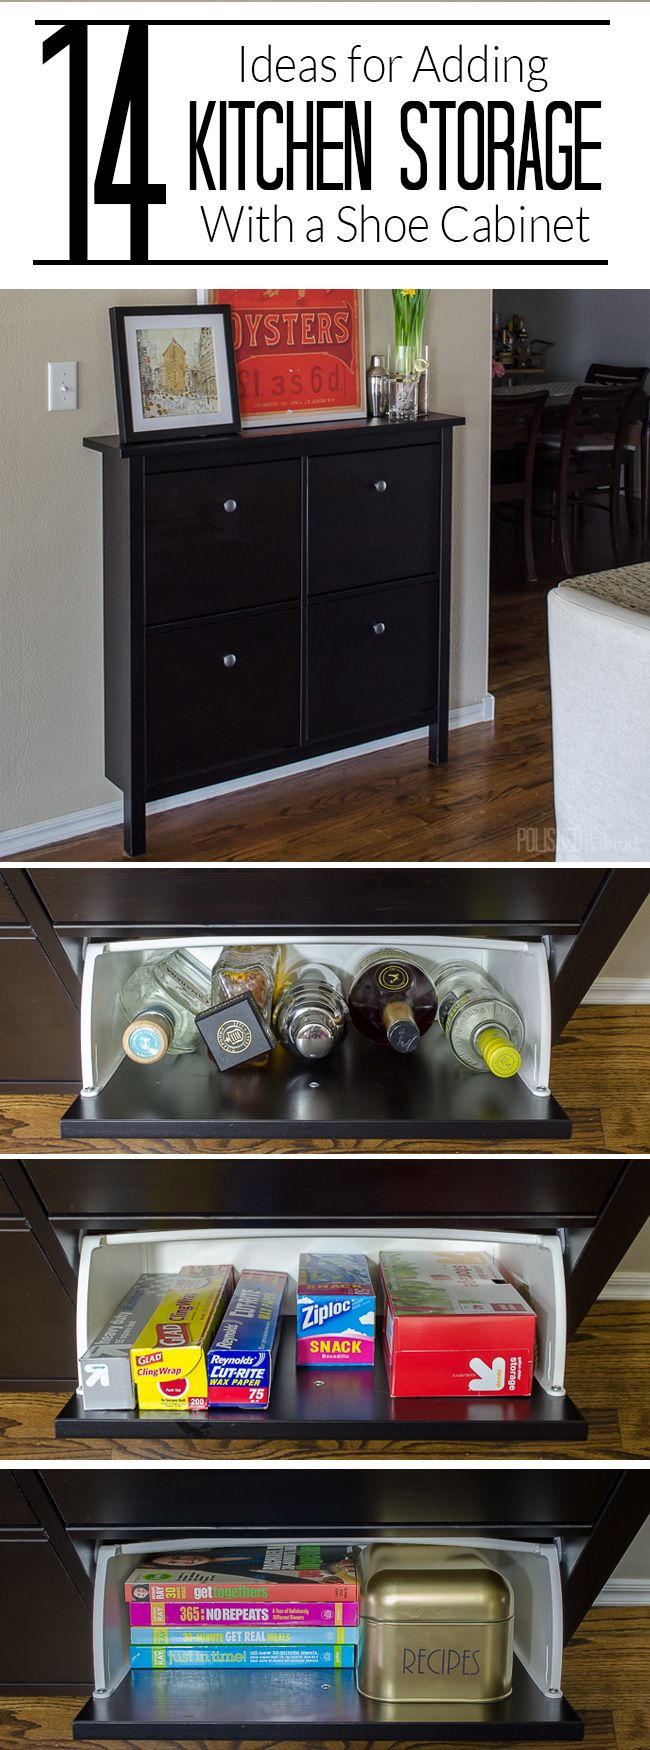 Trones Shoe Storage Cabinet Black 14 Ways To Use An Ikea Shoe Cabinet For Extra Kitchen